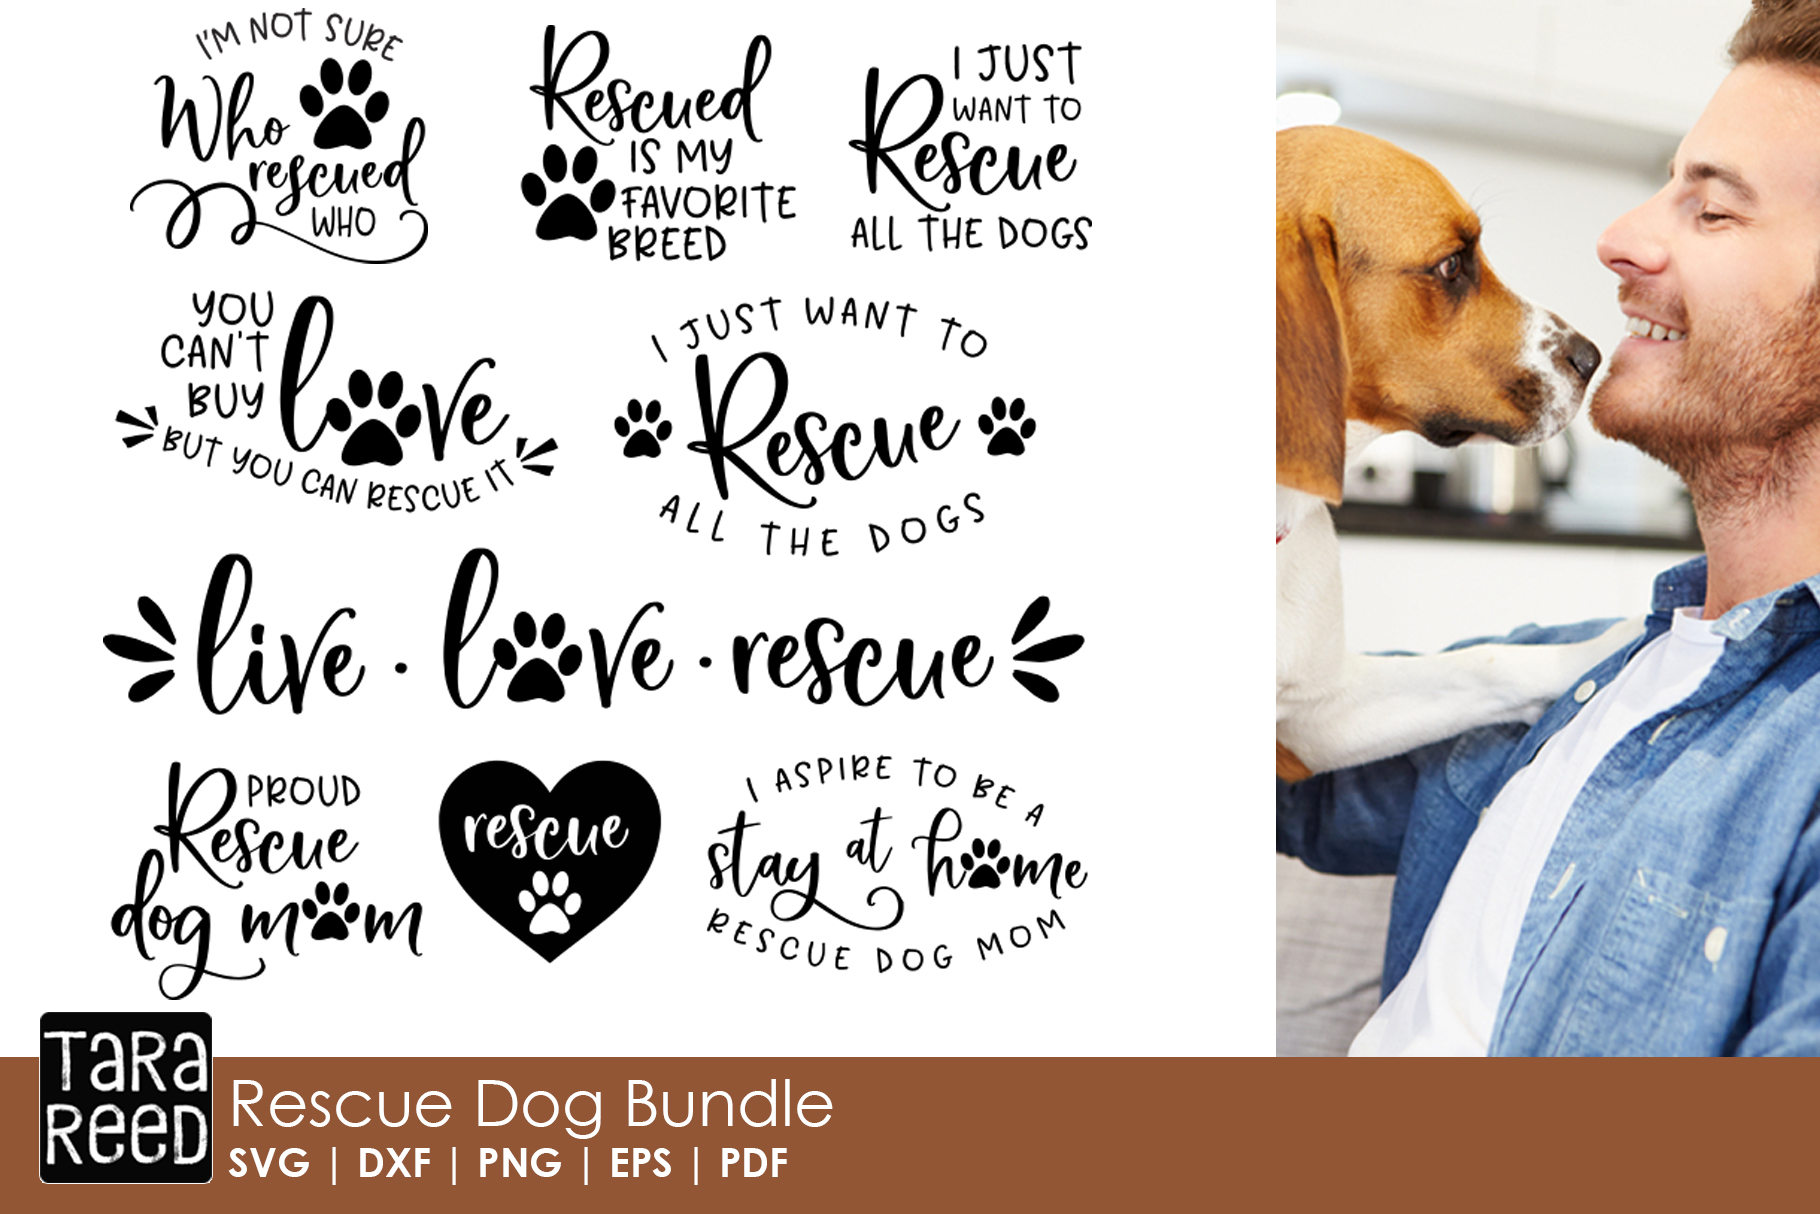 Rescue Dog MEGA Bundle - Rescue Dog SVG Files for Crafters example image 2